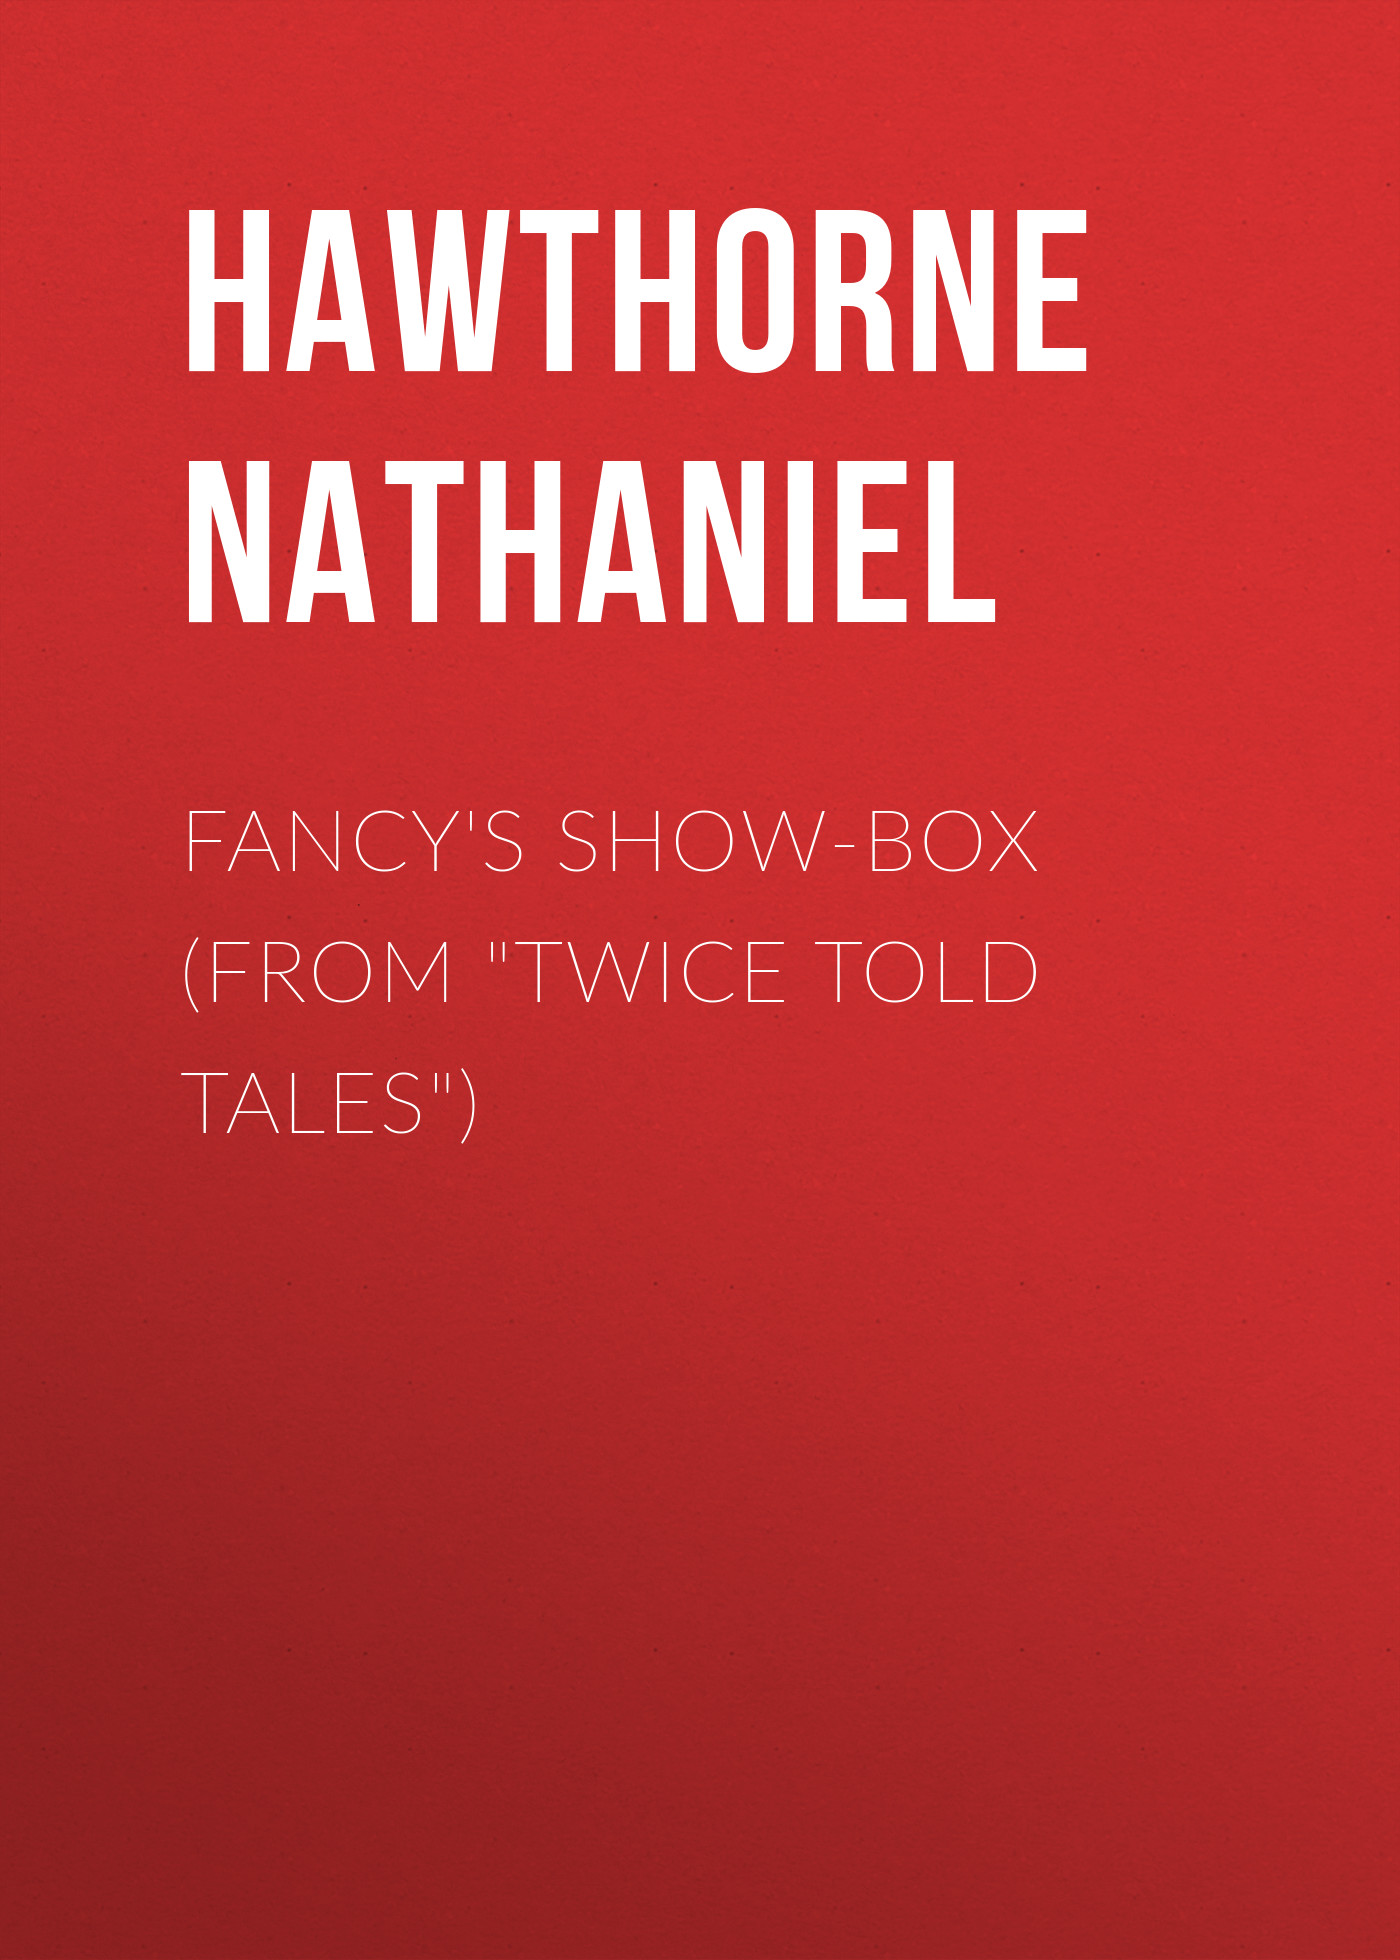 Hawthorne Nathaniel Fancy's Show-Box (From Twice Told Tales) life in trend шезлонг качалка lounge